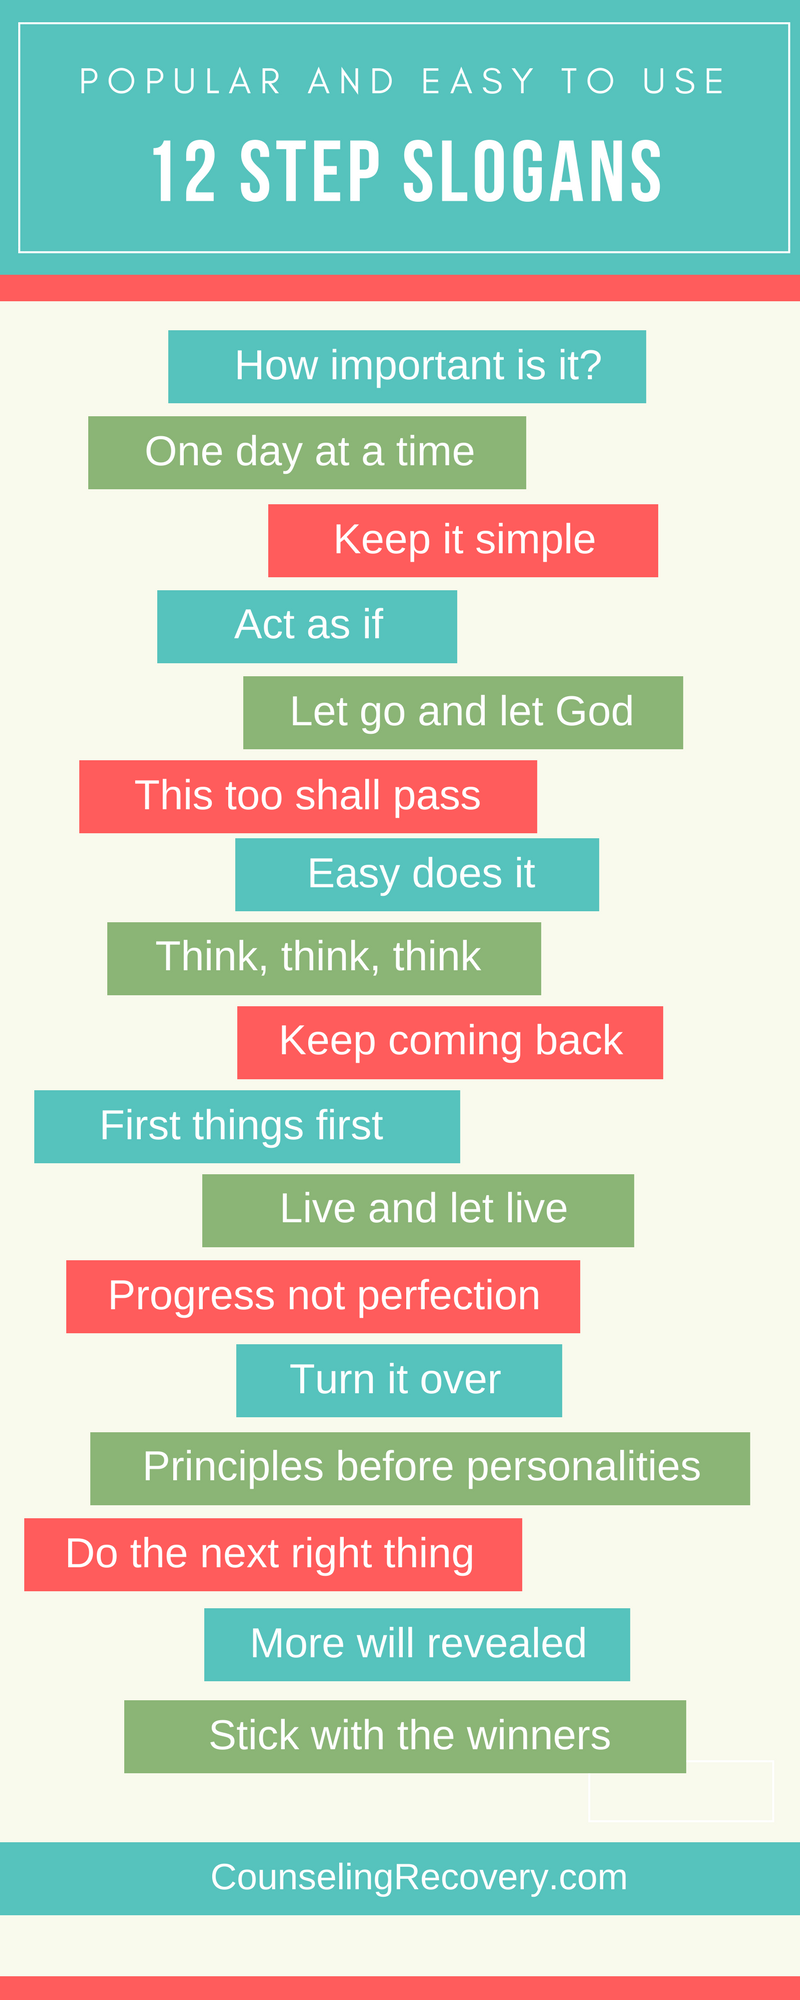 How to Use the 12 Step Slogans